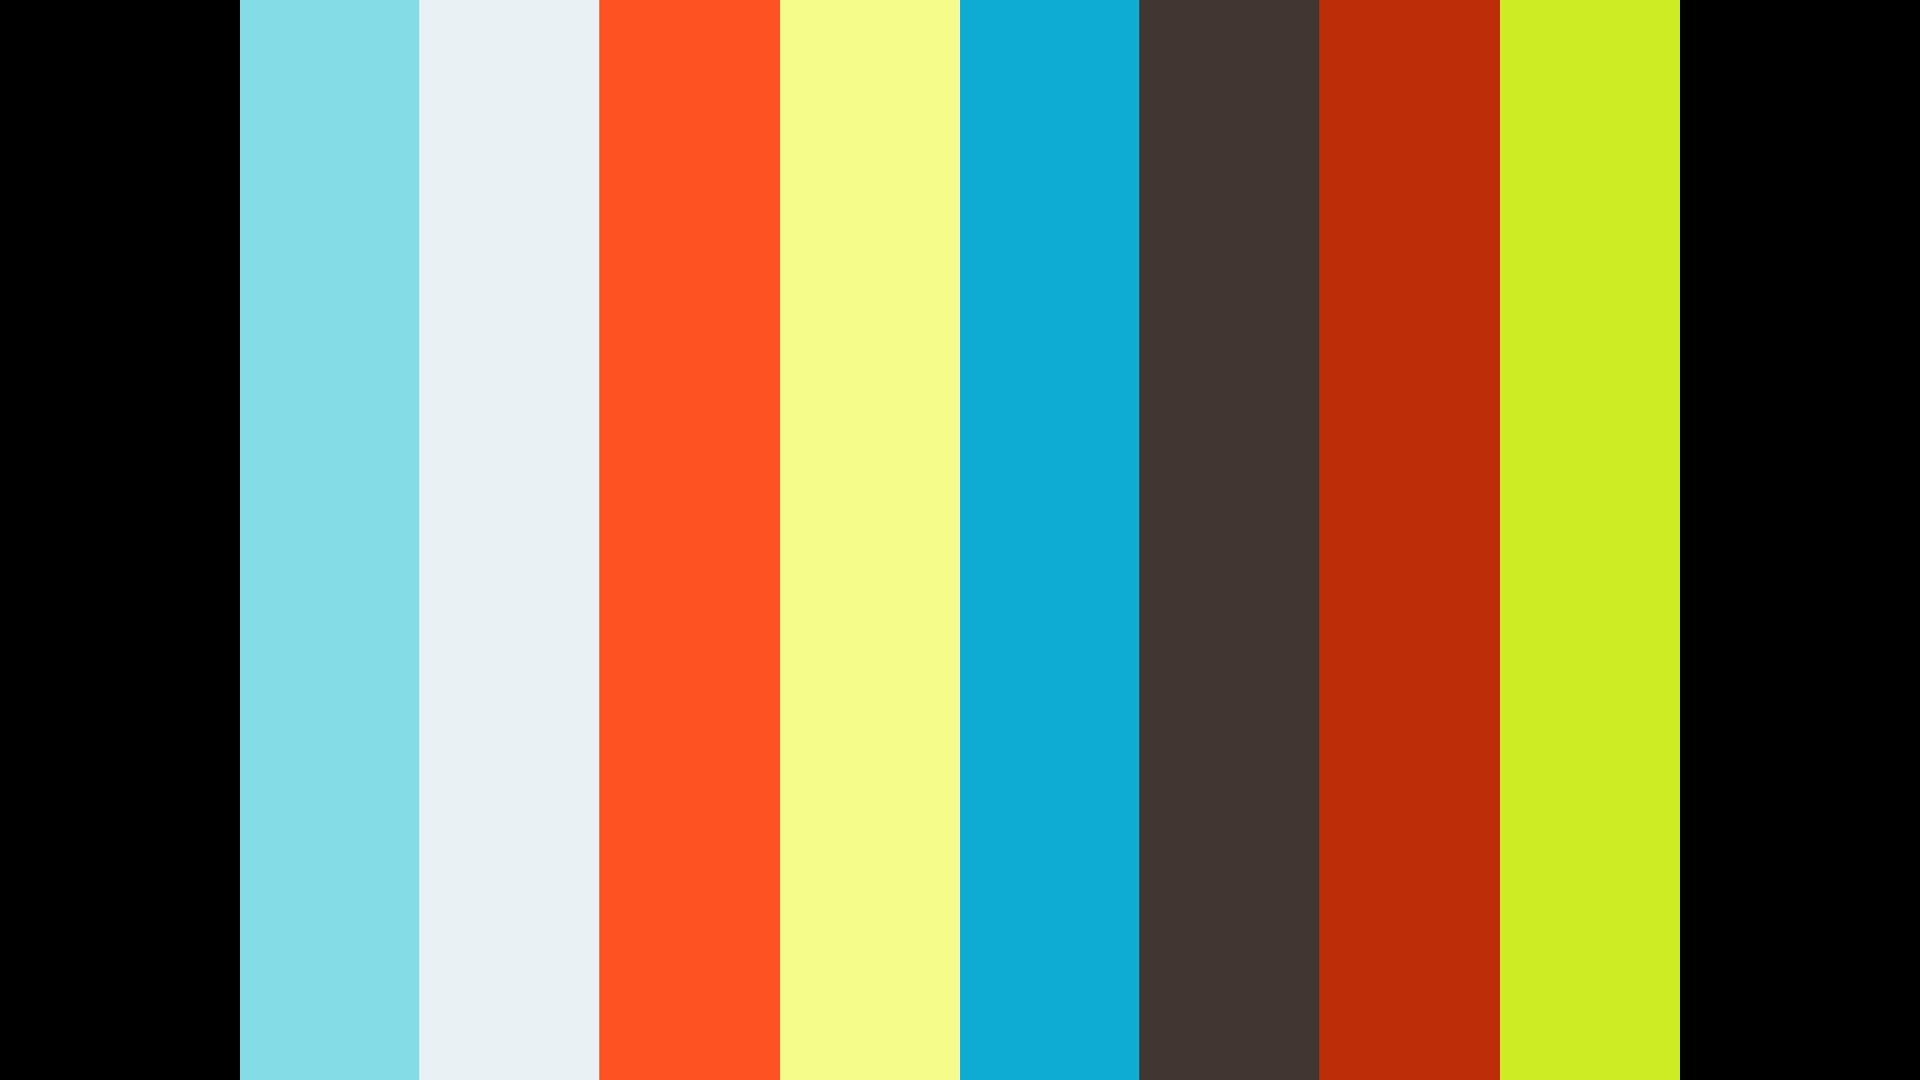 Bloom Energy: Staple Center (AEG)